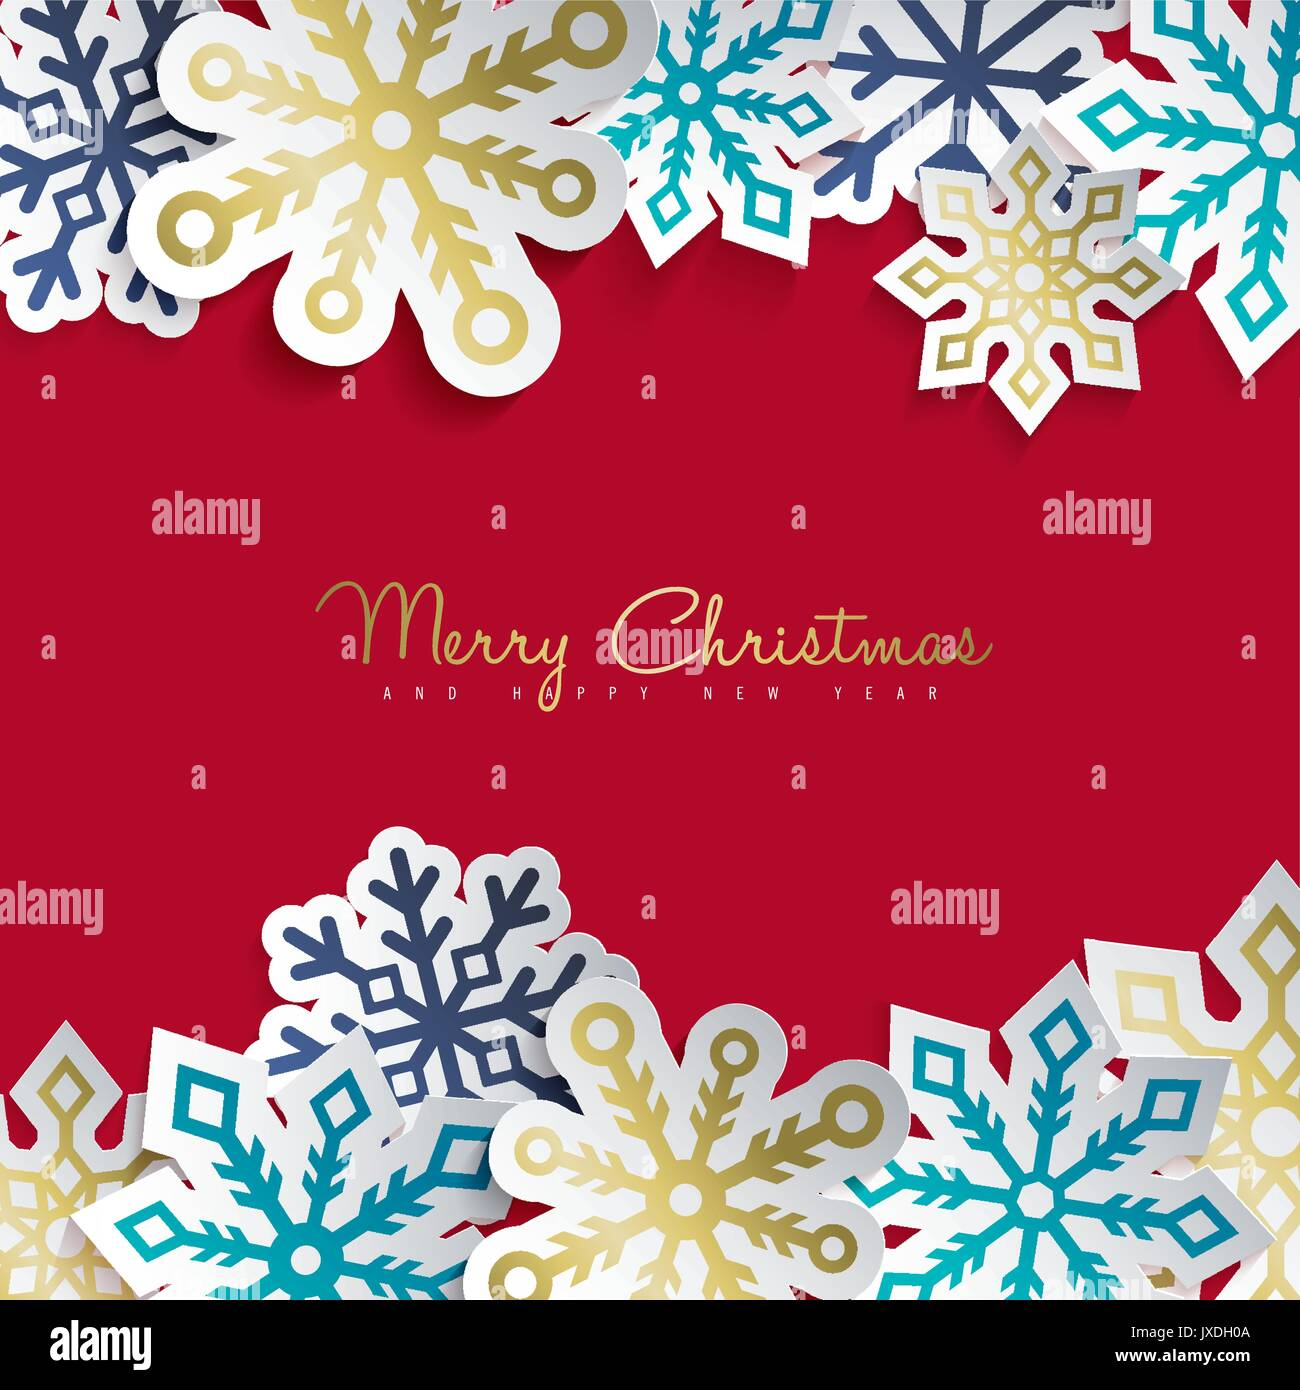 Merry Christmas And Happy New Year Greeting Card With Paper Cut